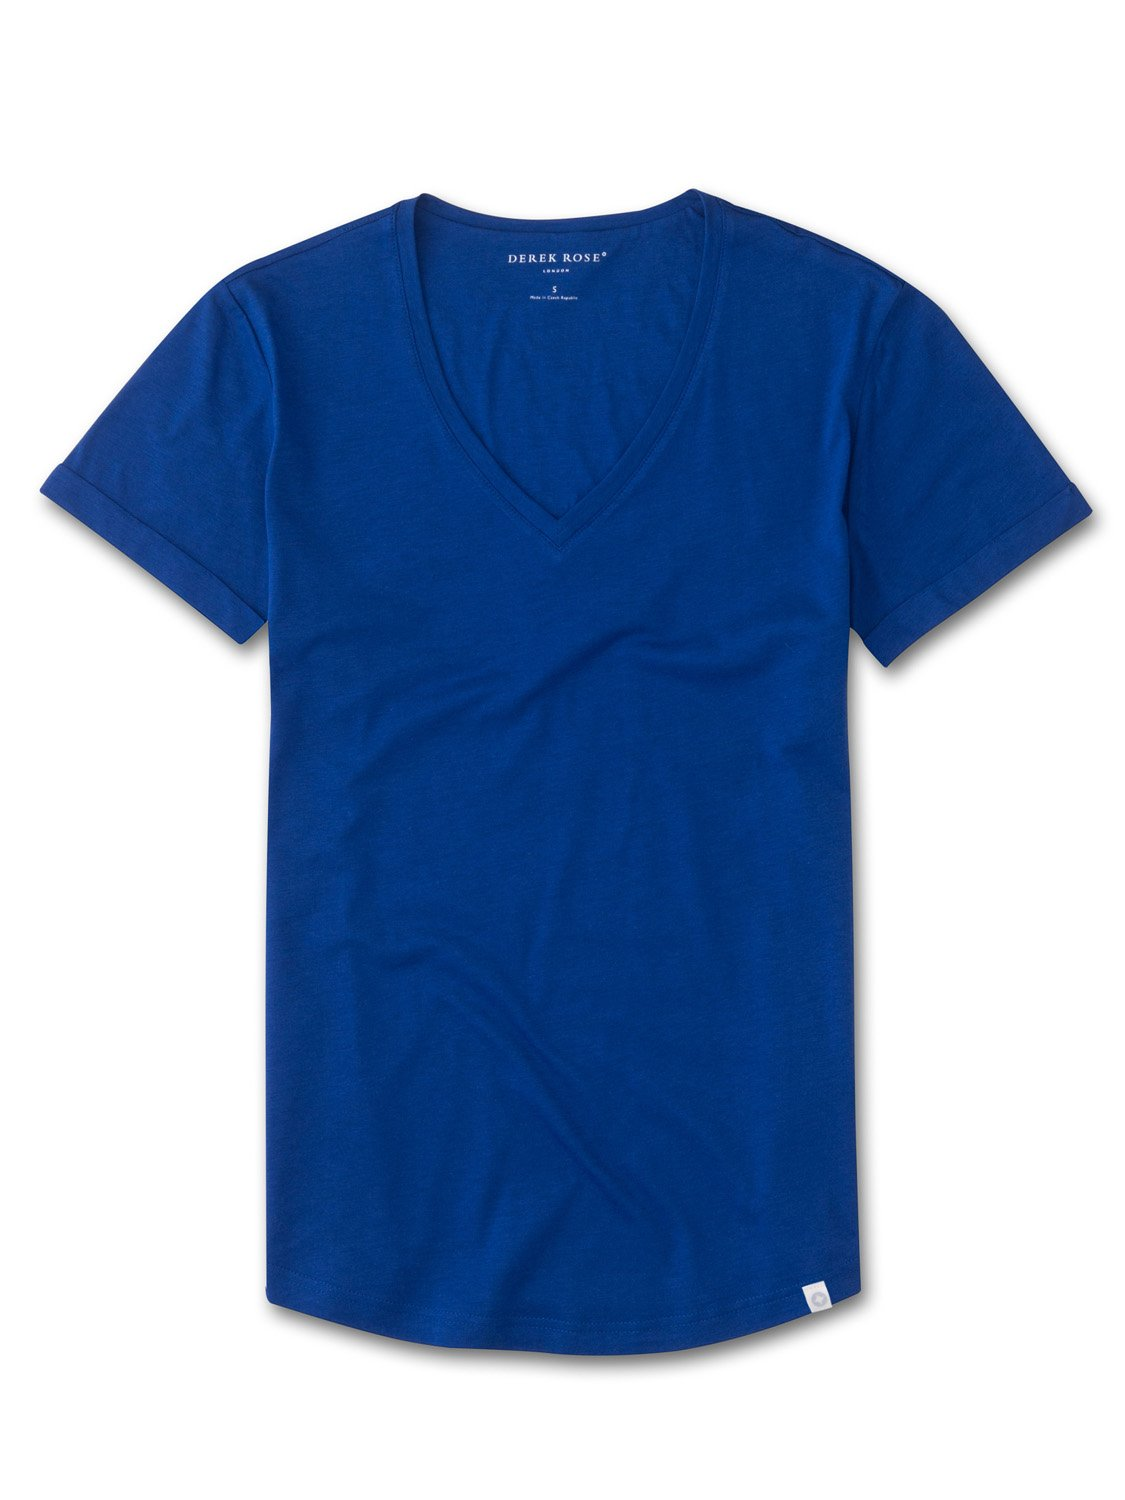 Women's V-Neck Leisure T-Shirt Riley Pima Cotton Blue